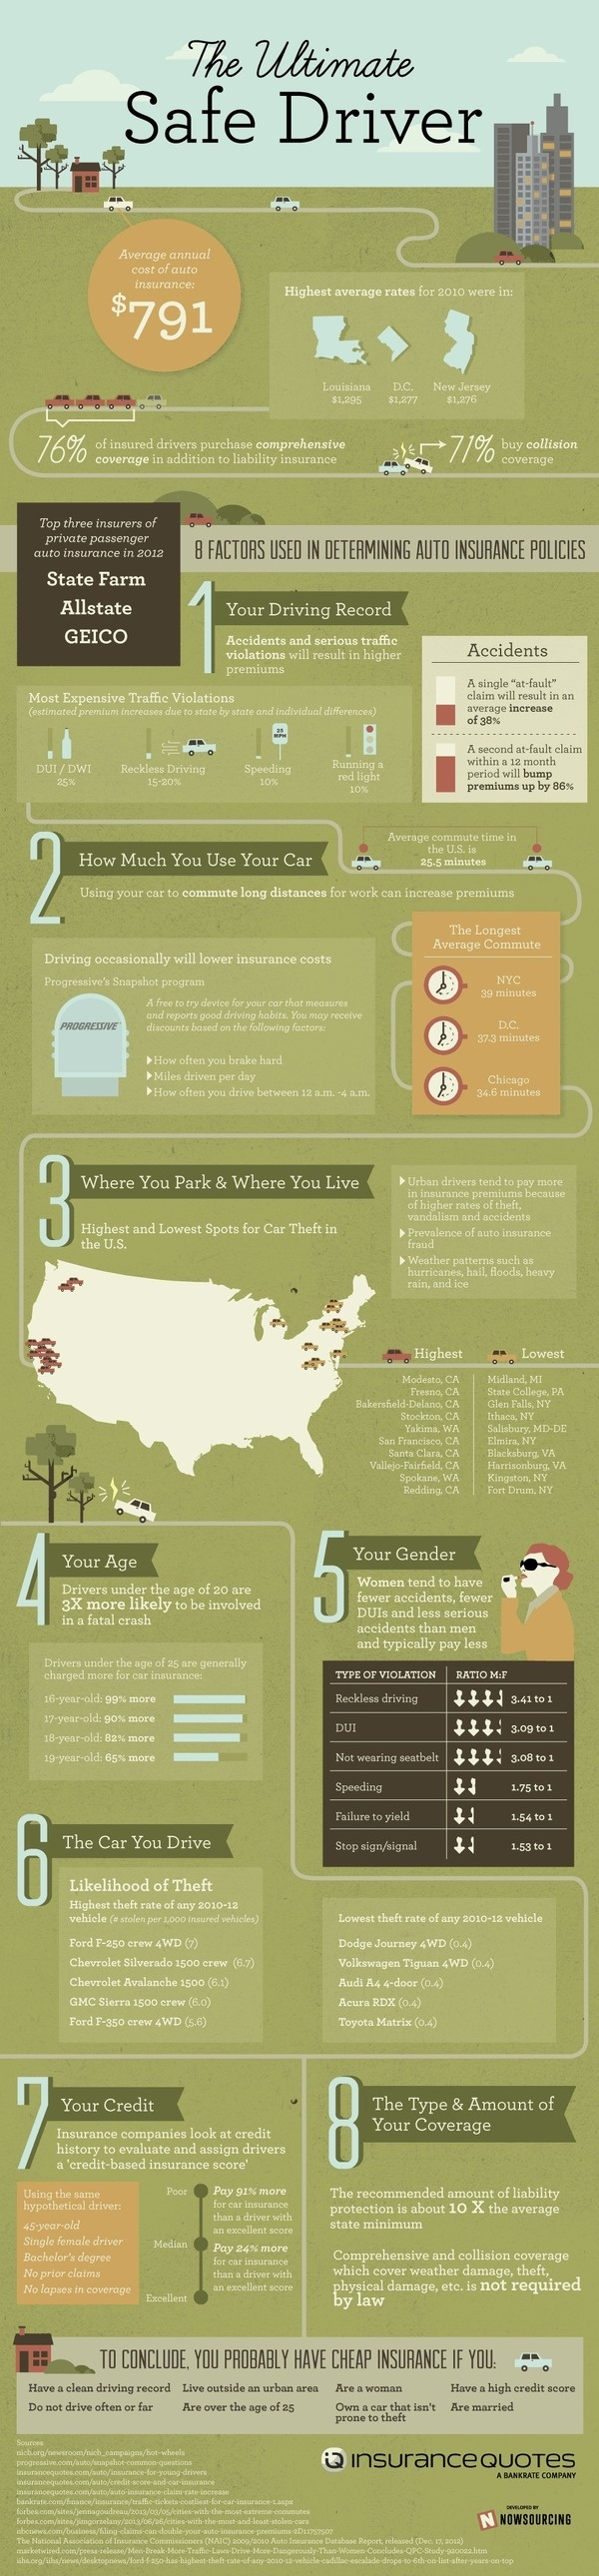 The Ultimate Safe Driver #infographic